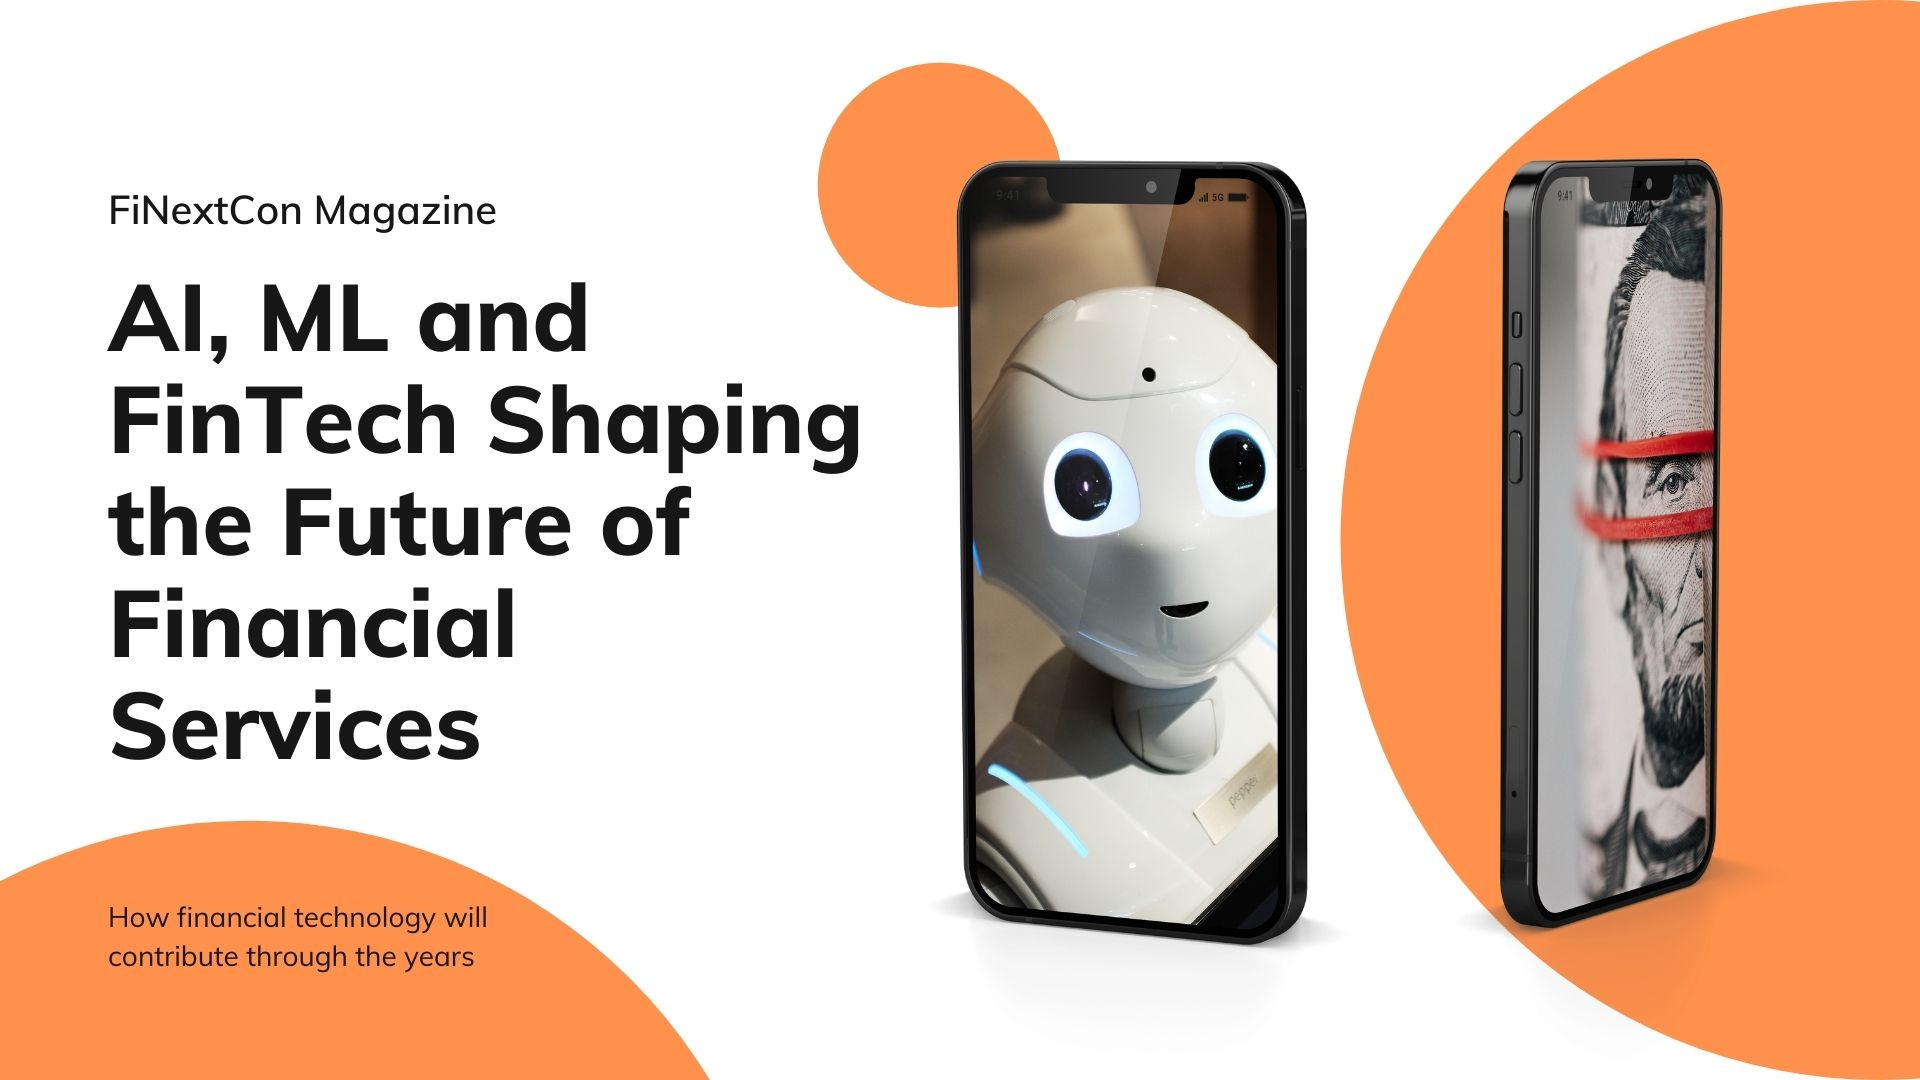 AI, ML and Fintech Shaping the Future of Financial Services